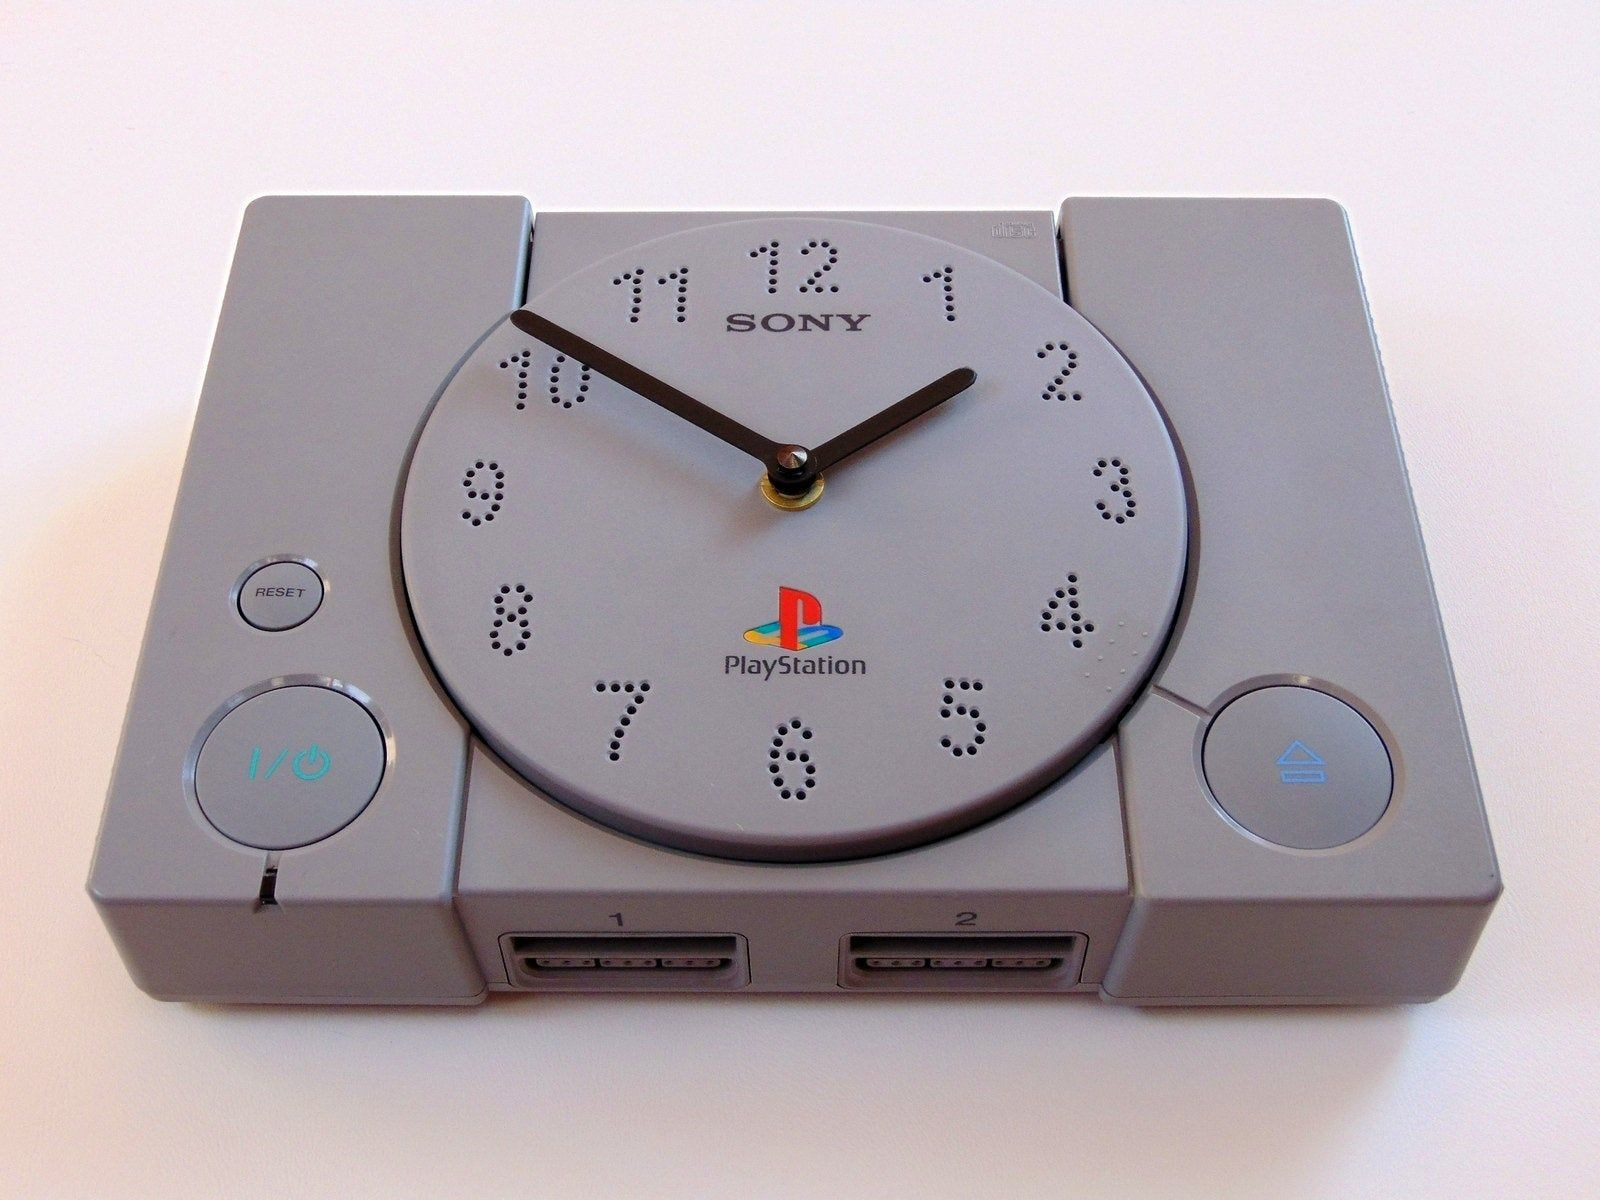 Playstation 1 classic console clock - gamer room decor - playstation retro video game gift - gamer table gift - ps classic gamer gift #gamerroom